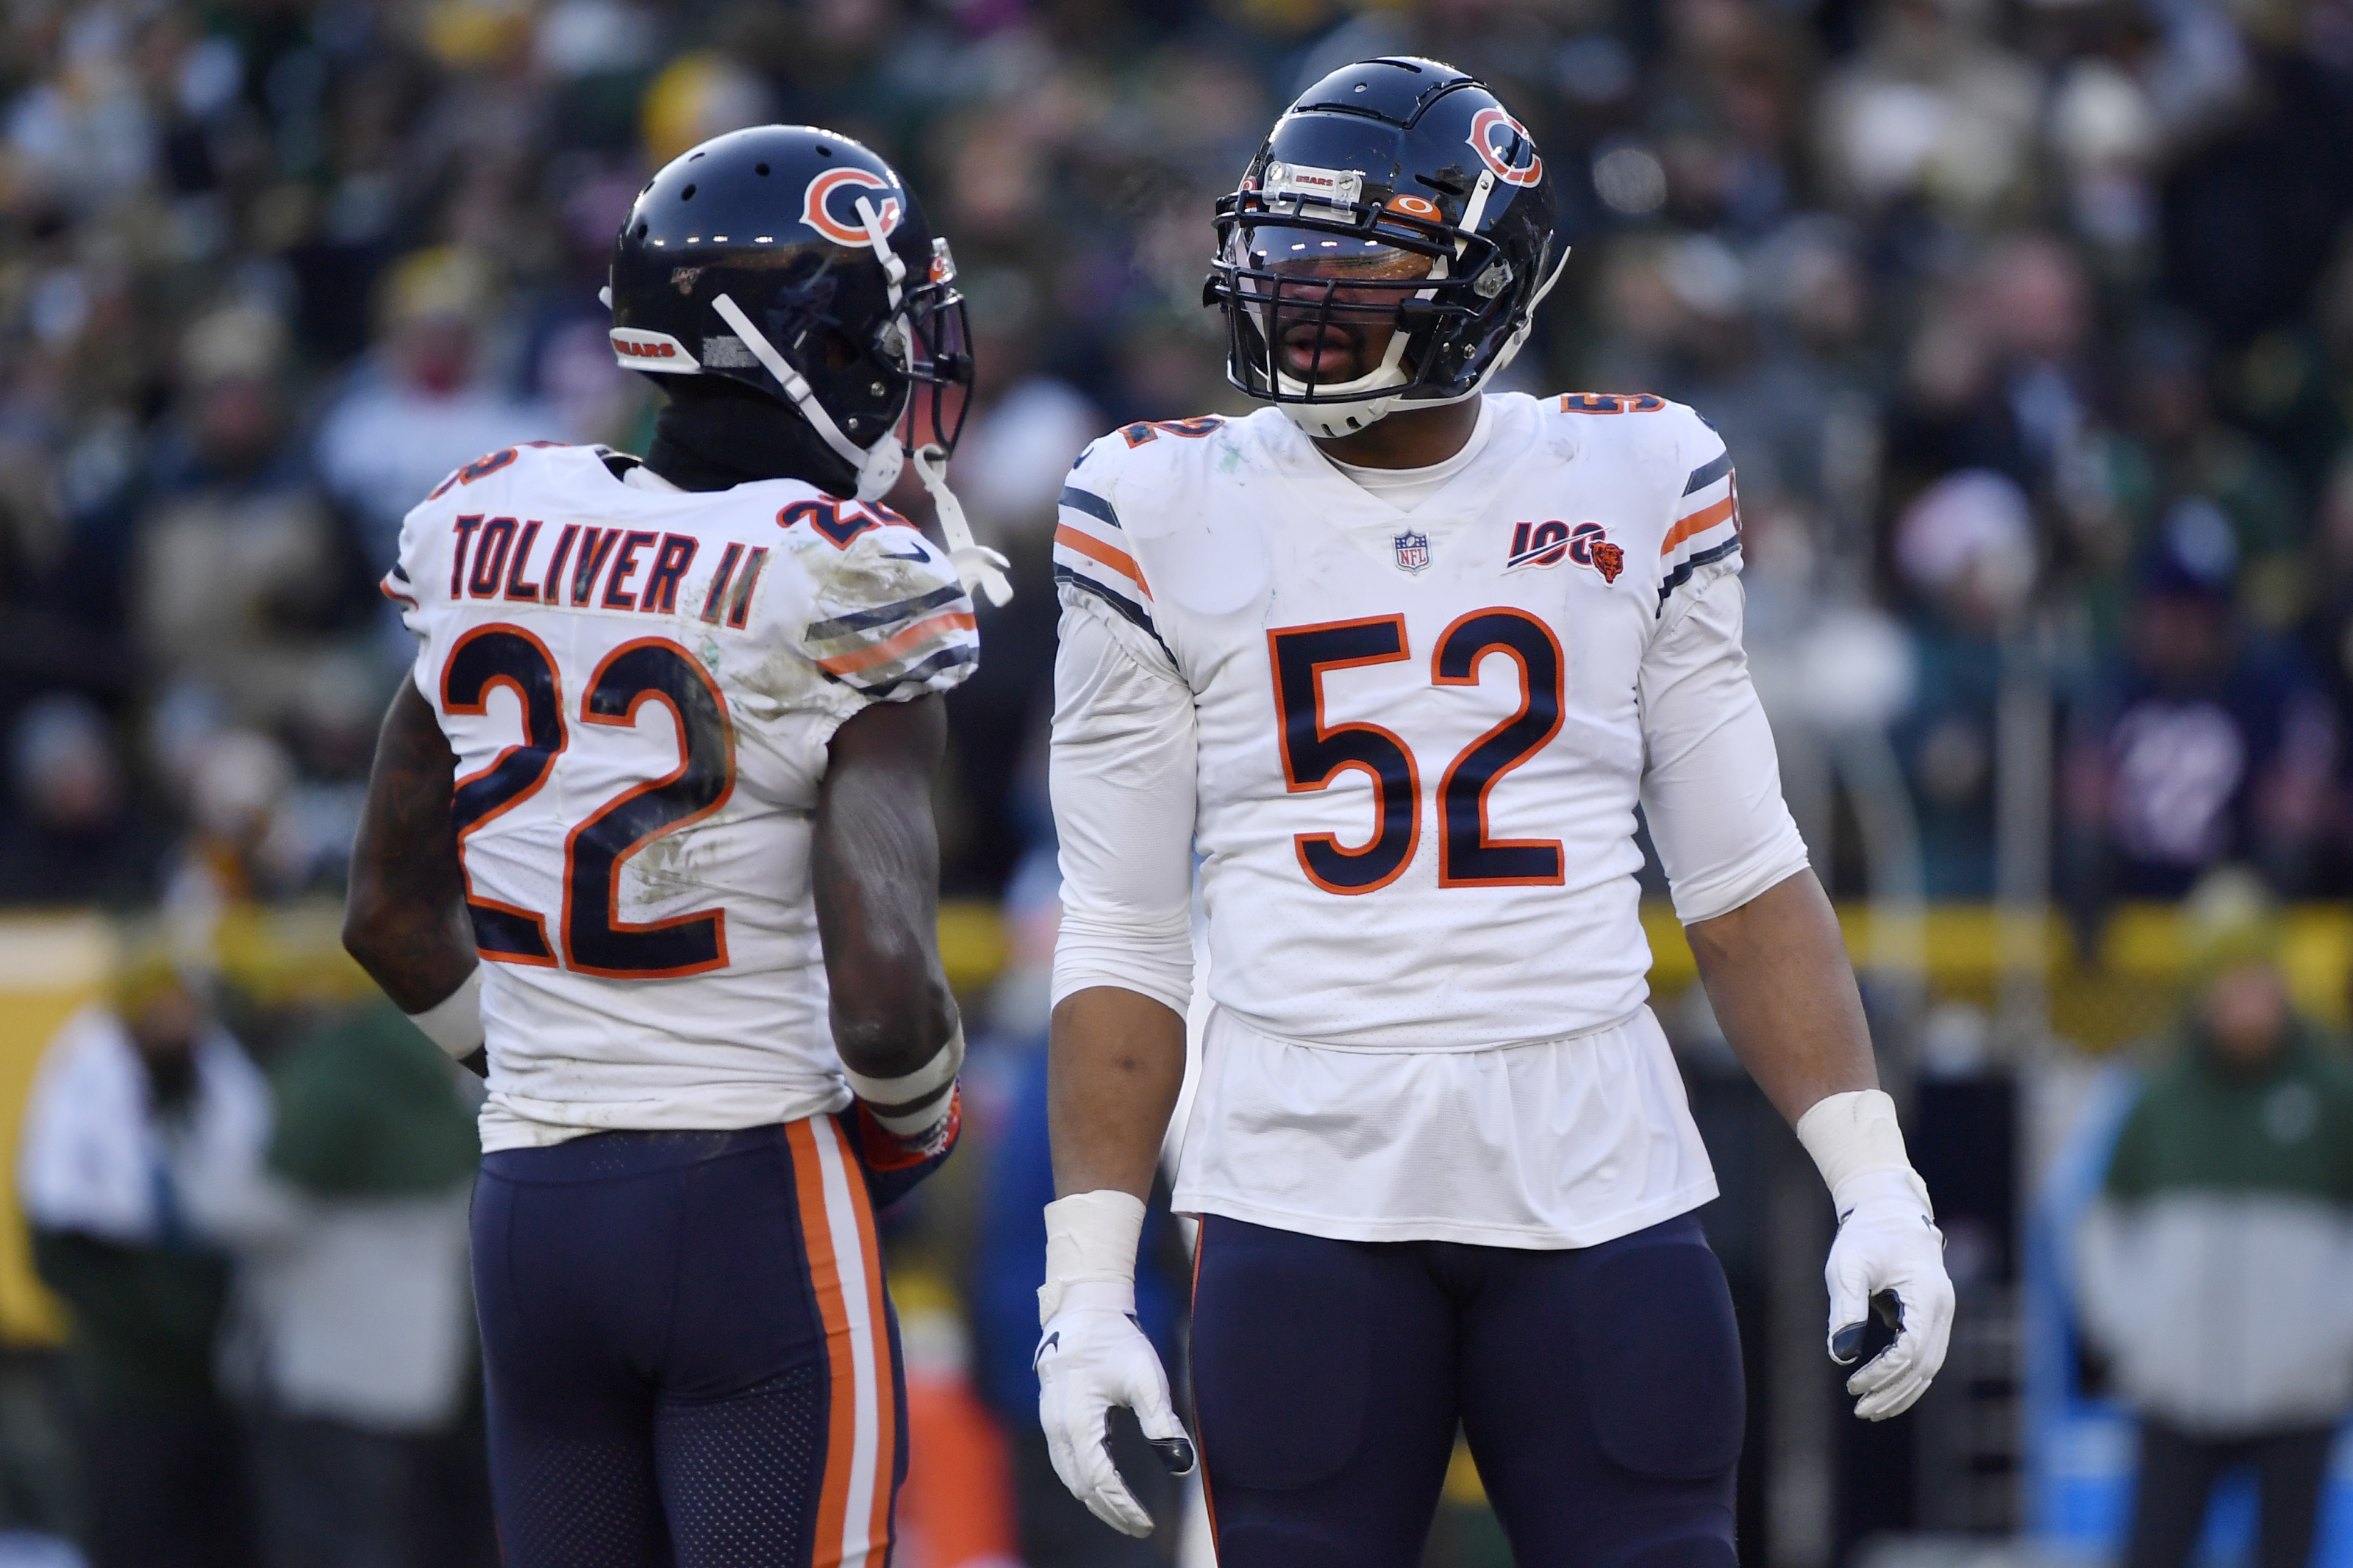 Chicago Bears Pass Rush Review: Khalil Mack dominates in easy matchup